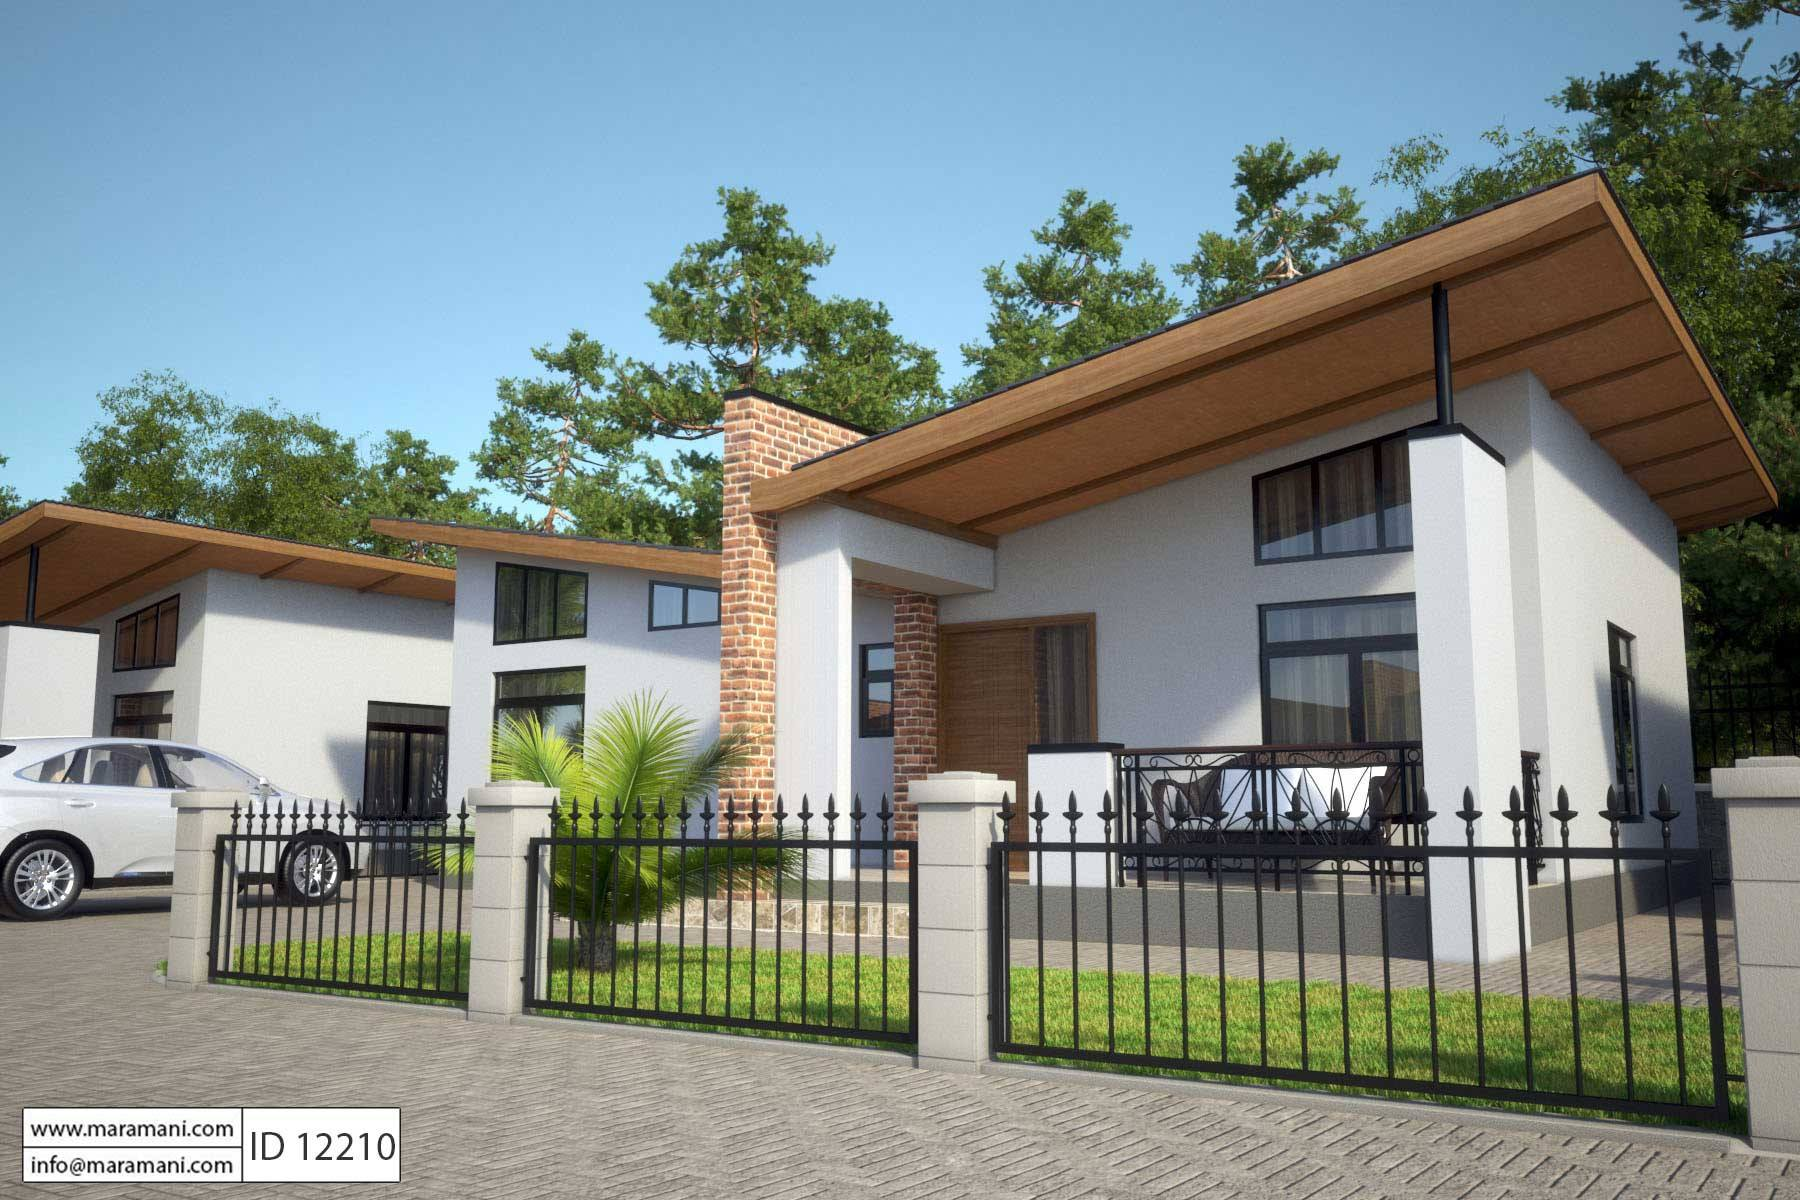 2 bedroom house plan id 12210 house designs by maramani for Houde plans